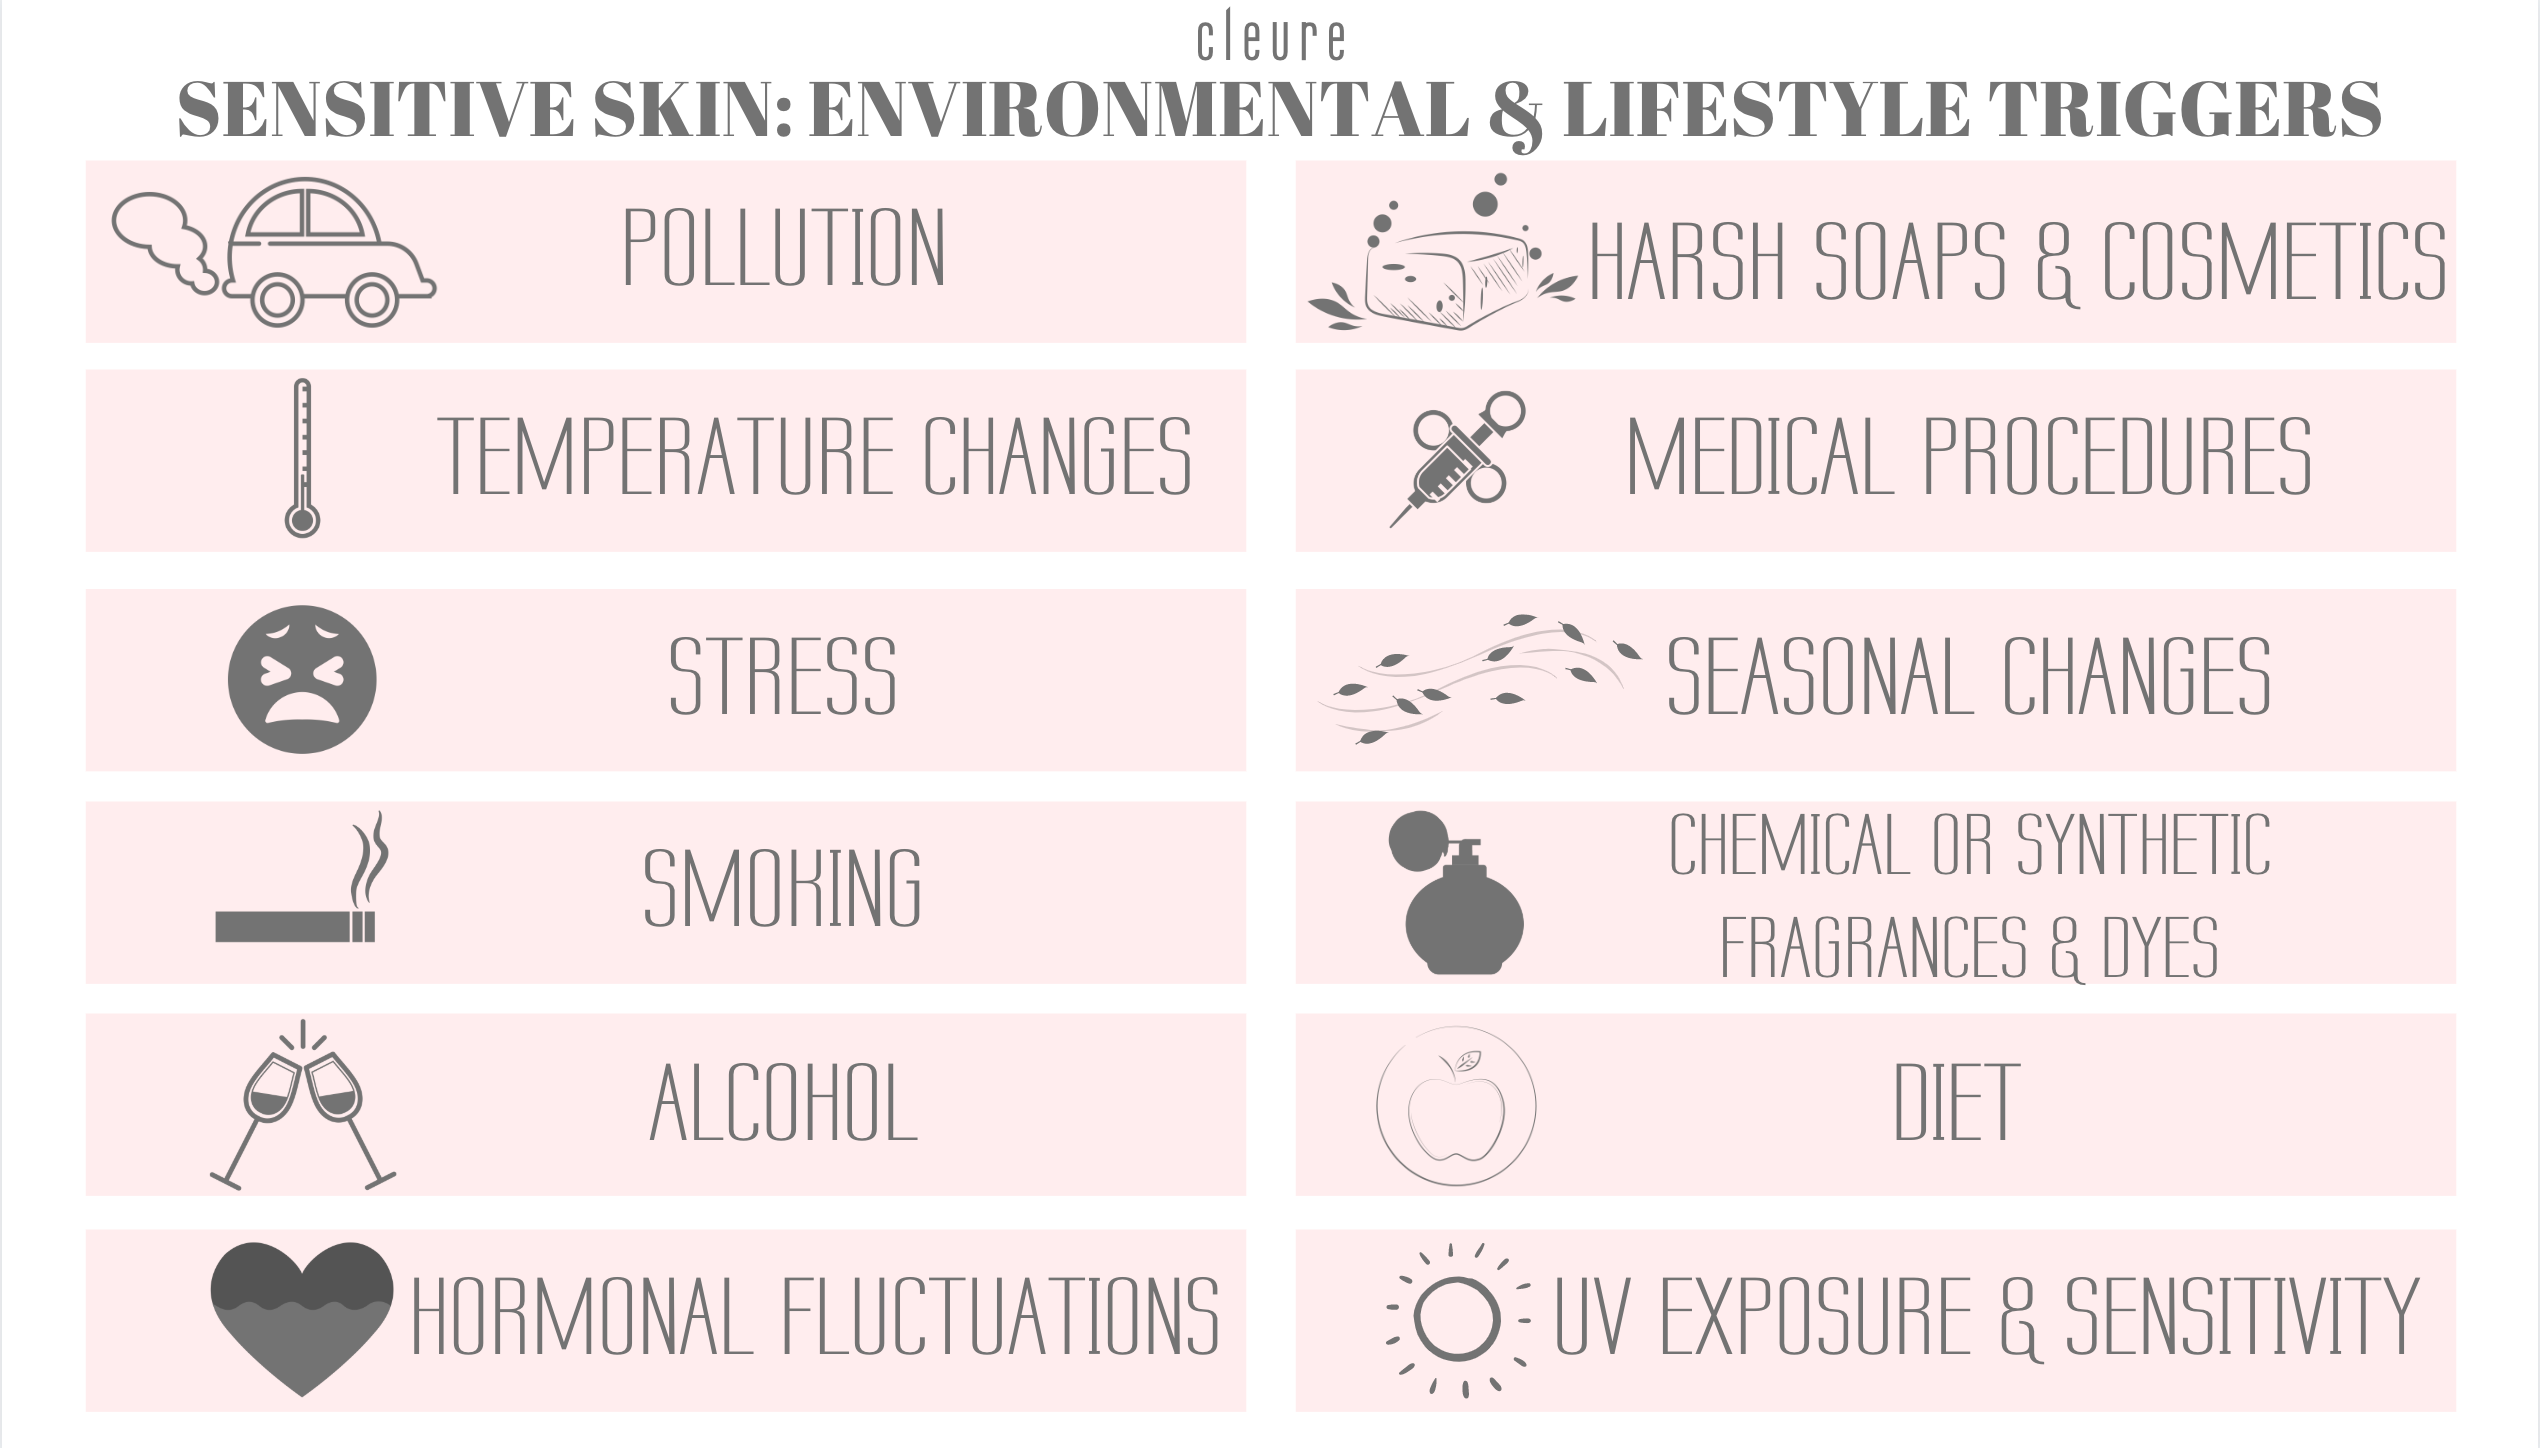 Environmental and Lifestyle Sensitive Skincare Triggers include pollution, temperature changes, stress, smoking, alcohol, hormonal fluctuations, harsh soaps & cosmetics, medical & cosmetic procedures, seasonal changes, chemical or synthetic fragrances and dyes, diet, and UV exposure and sensitivity